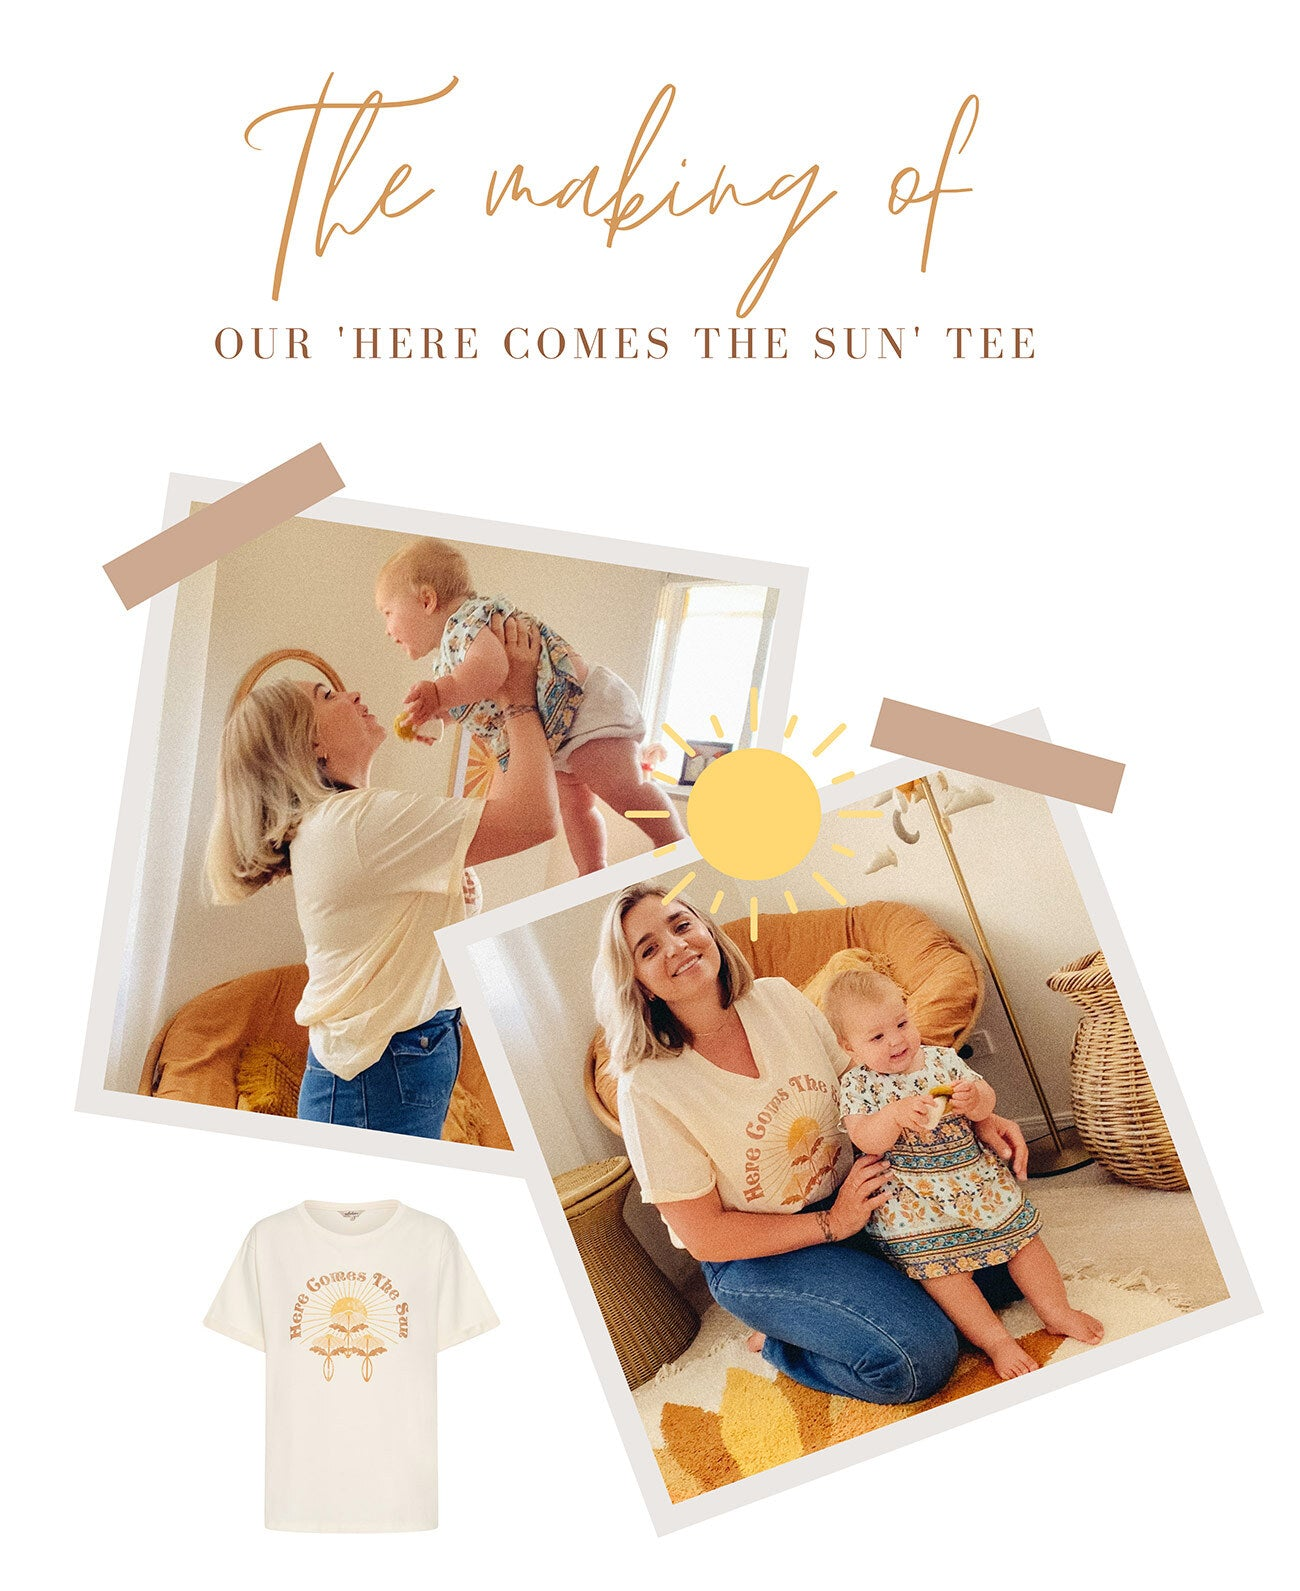 Meet Jaz of Harley and J the illustrator behind our Here Comes The Sun Tee